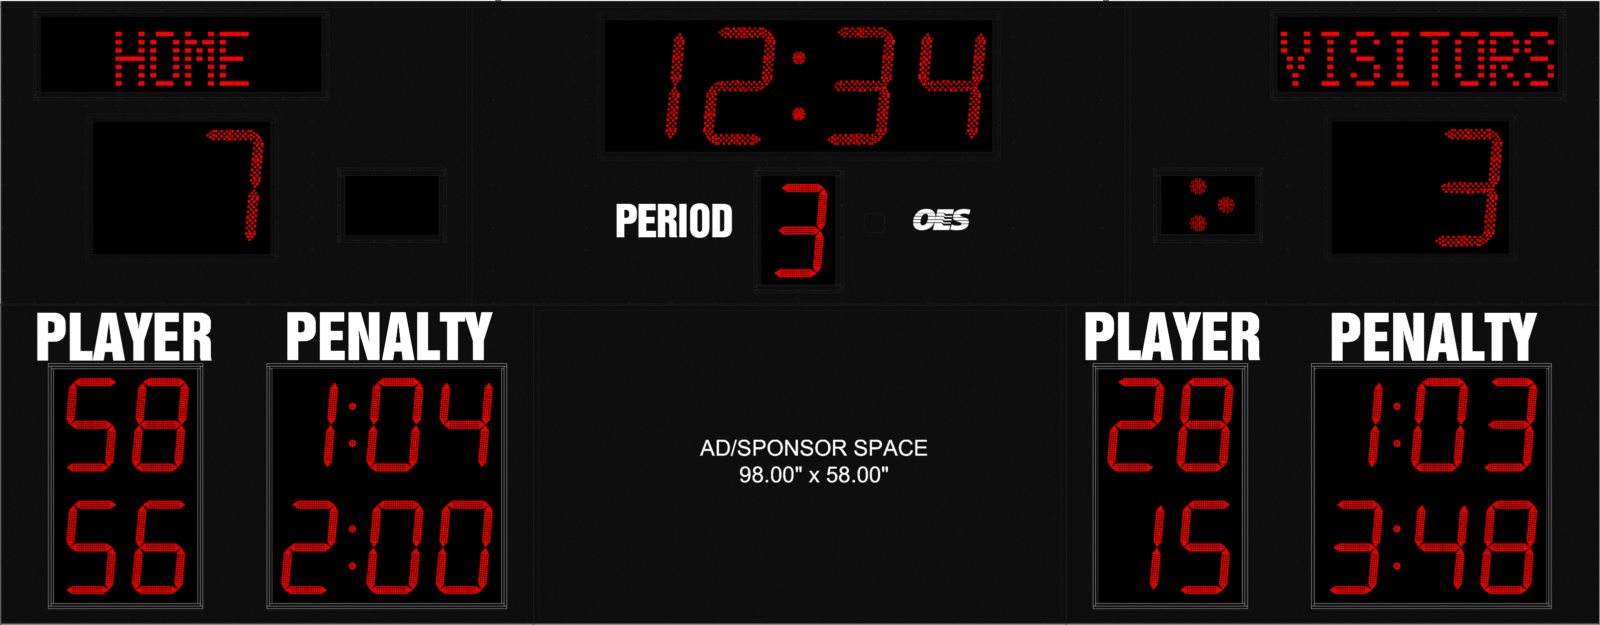 red light scoreboard with ad space